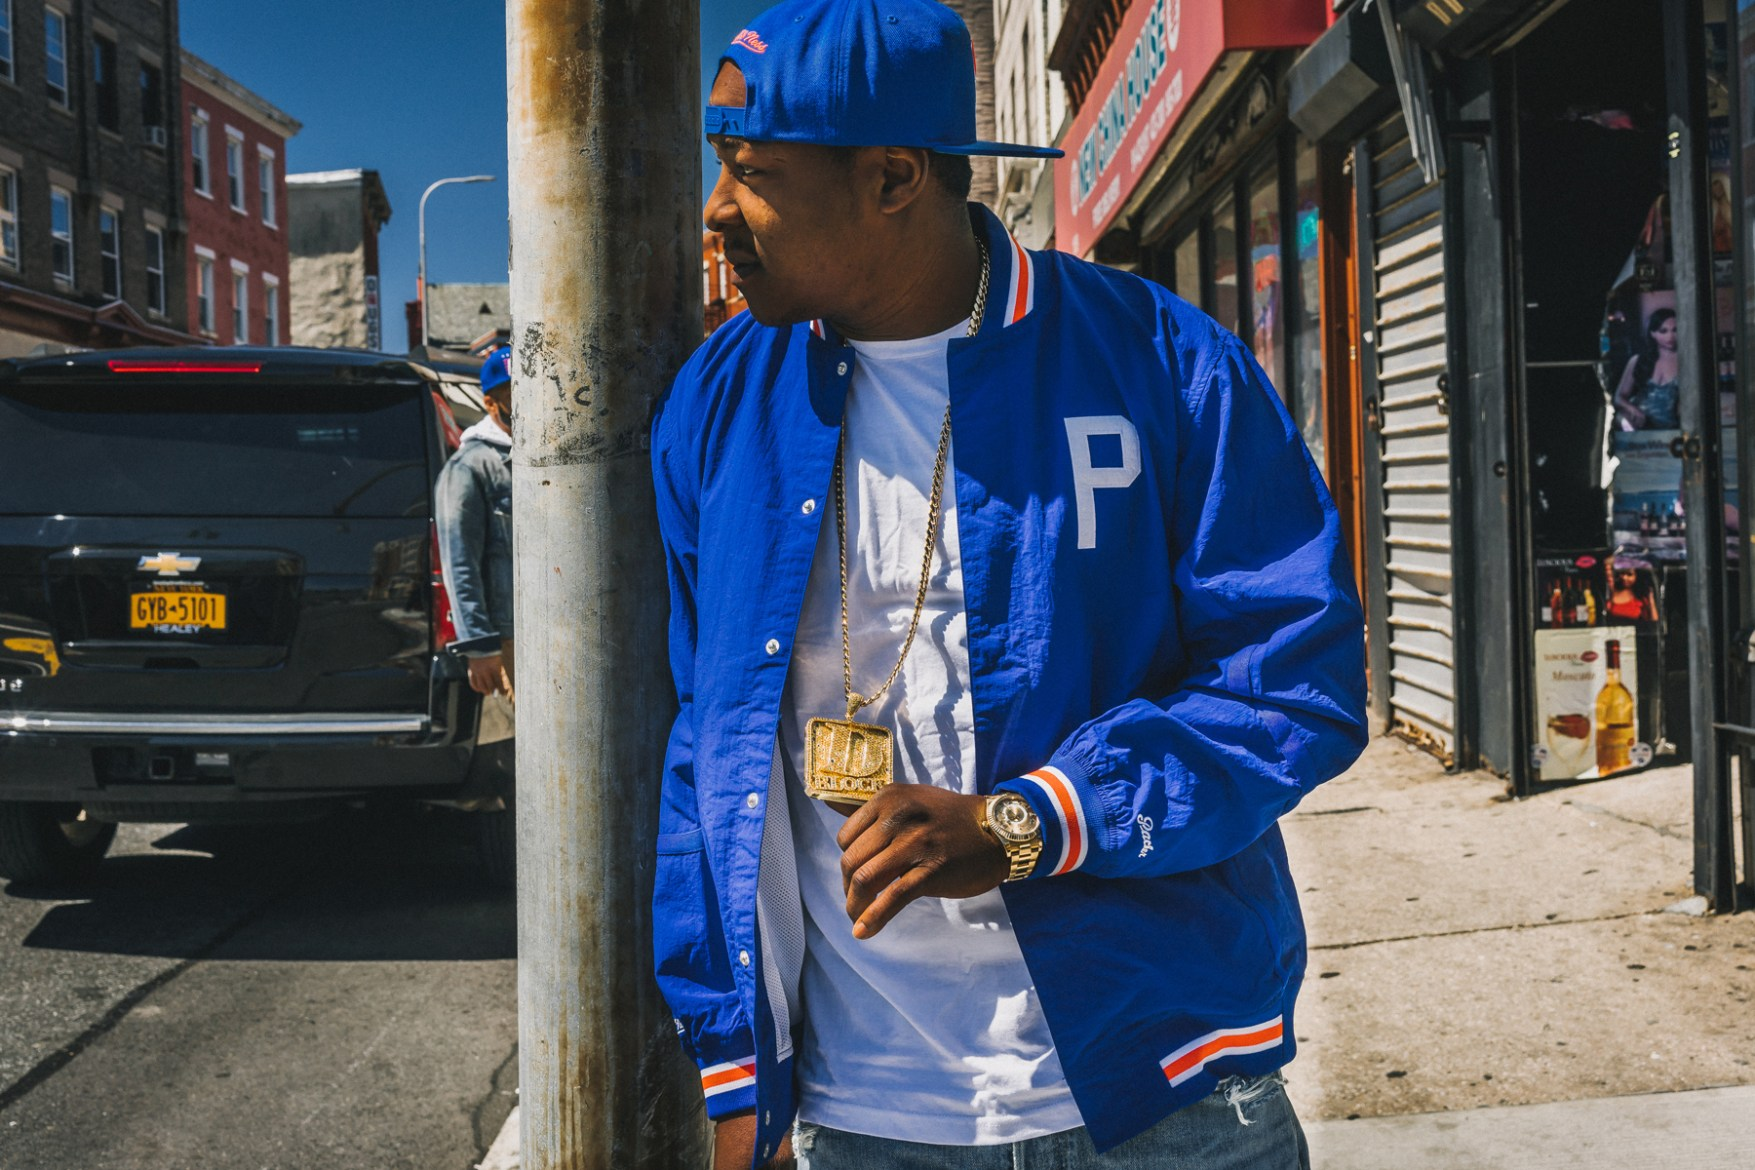 Jadakiss & Packer Shoes Pay Homage to Yonkers With Mitchell & Ness Collaboration